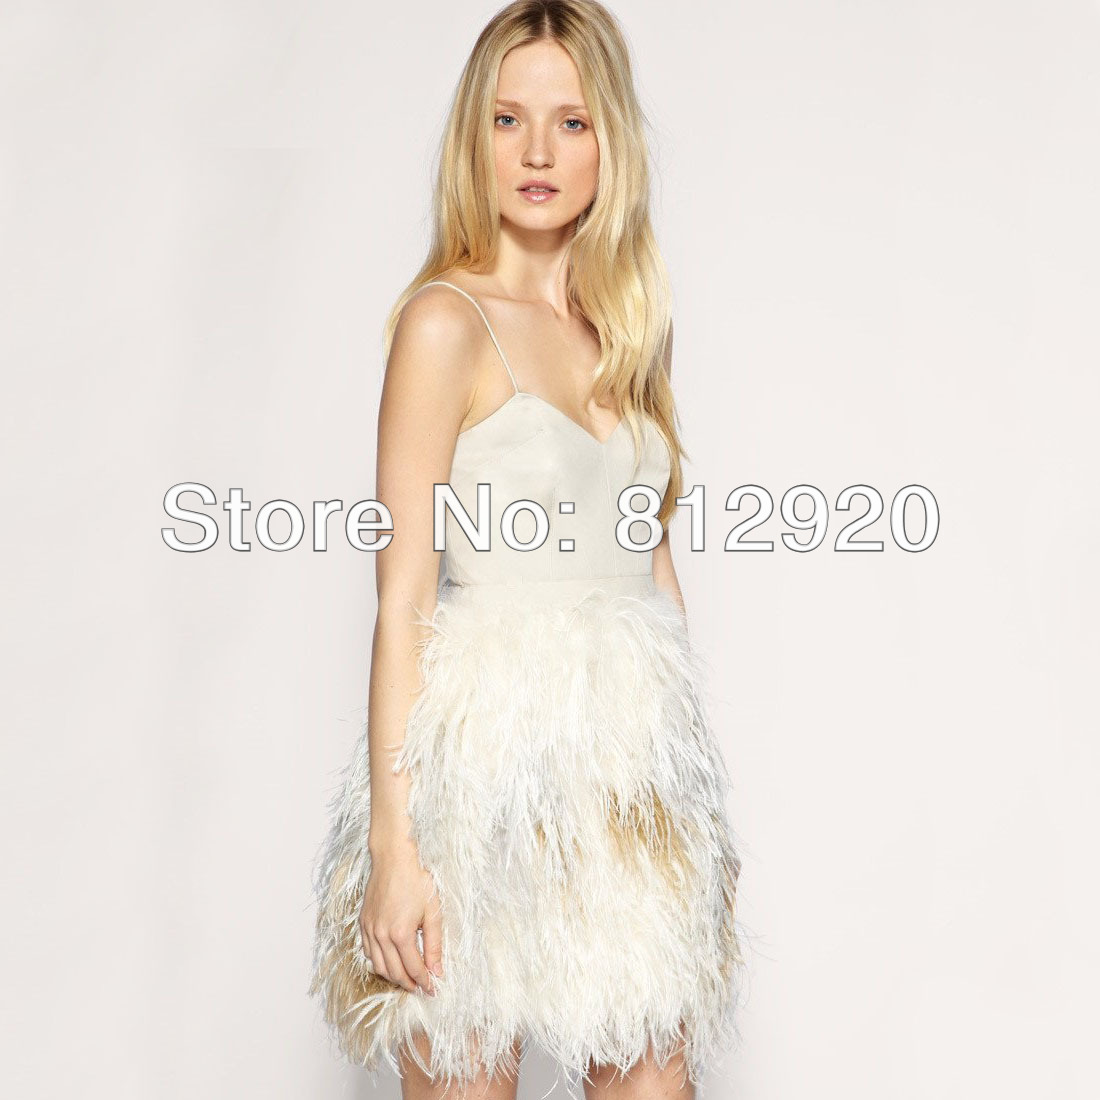 C166 Spaghetti Straps Mini Short Homecoming   Cocktail     Dress   Skirt Feathers